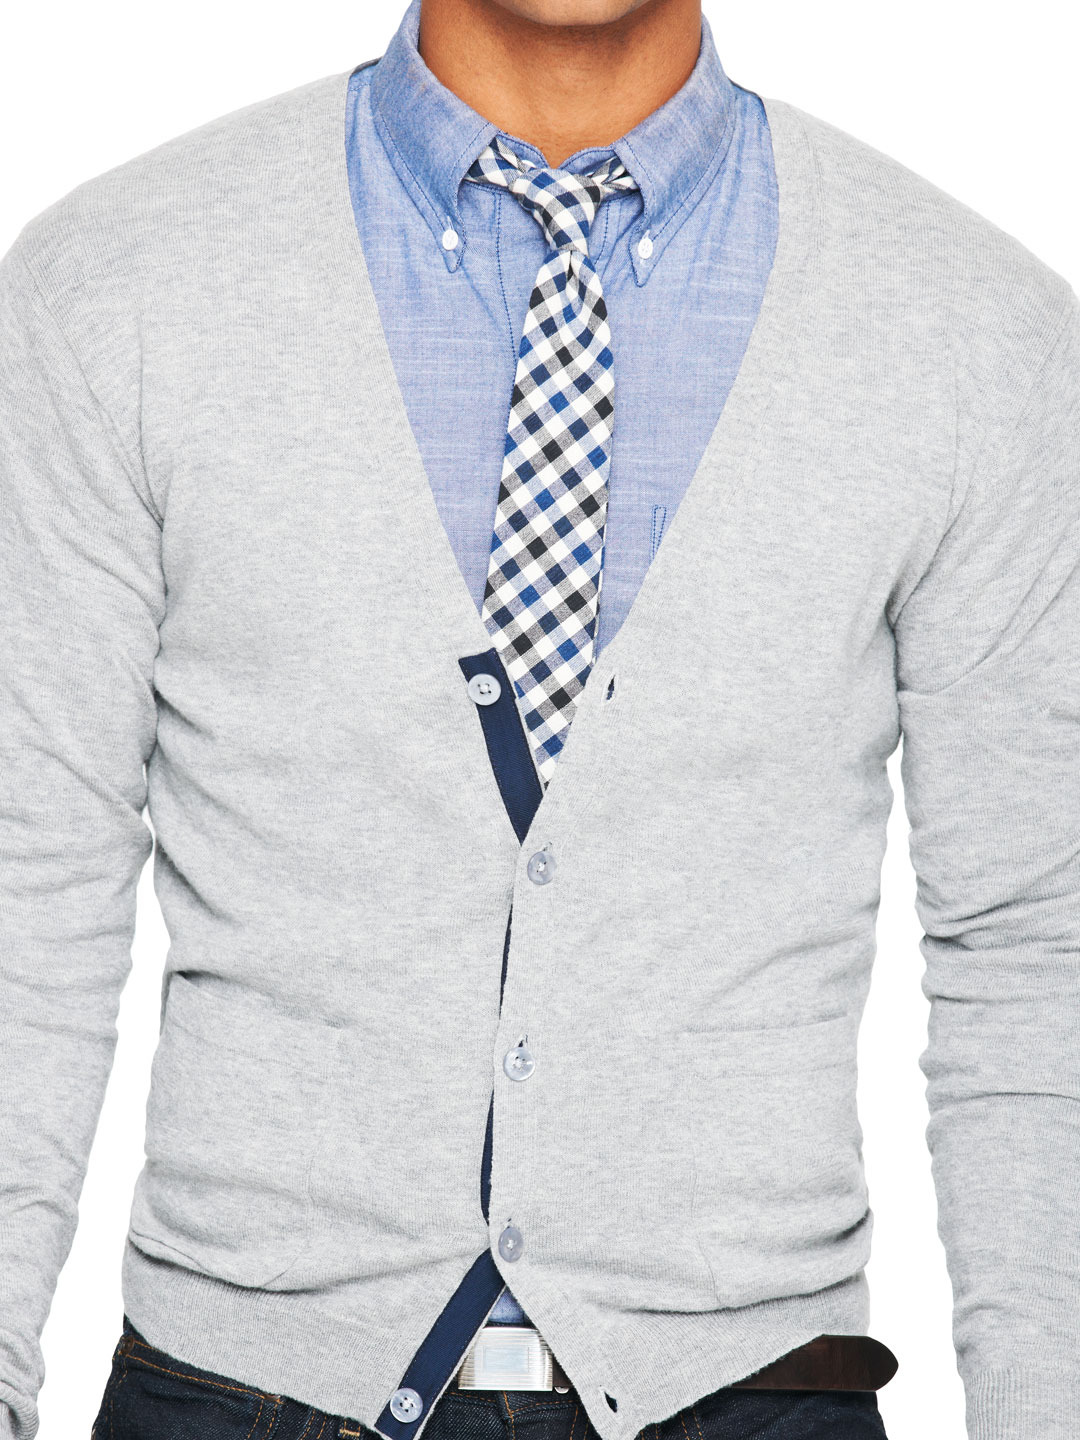 Business attire business casual for men for Casual shirt and tie